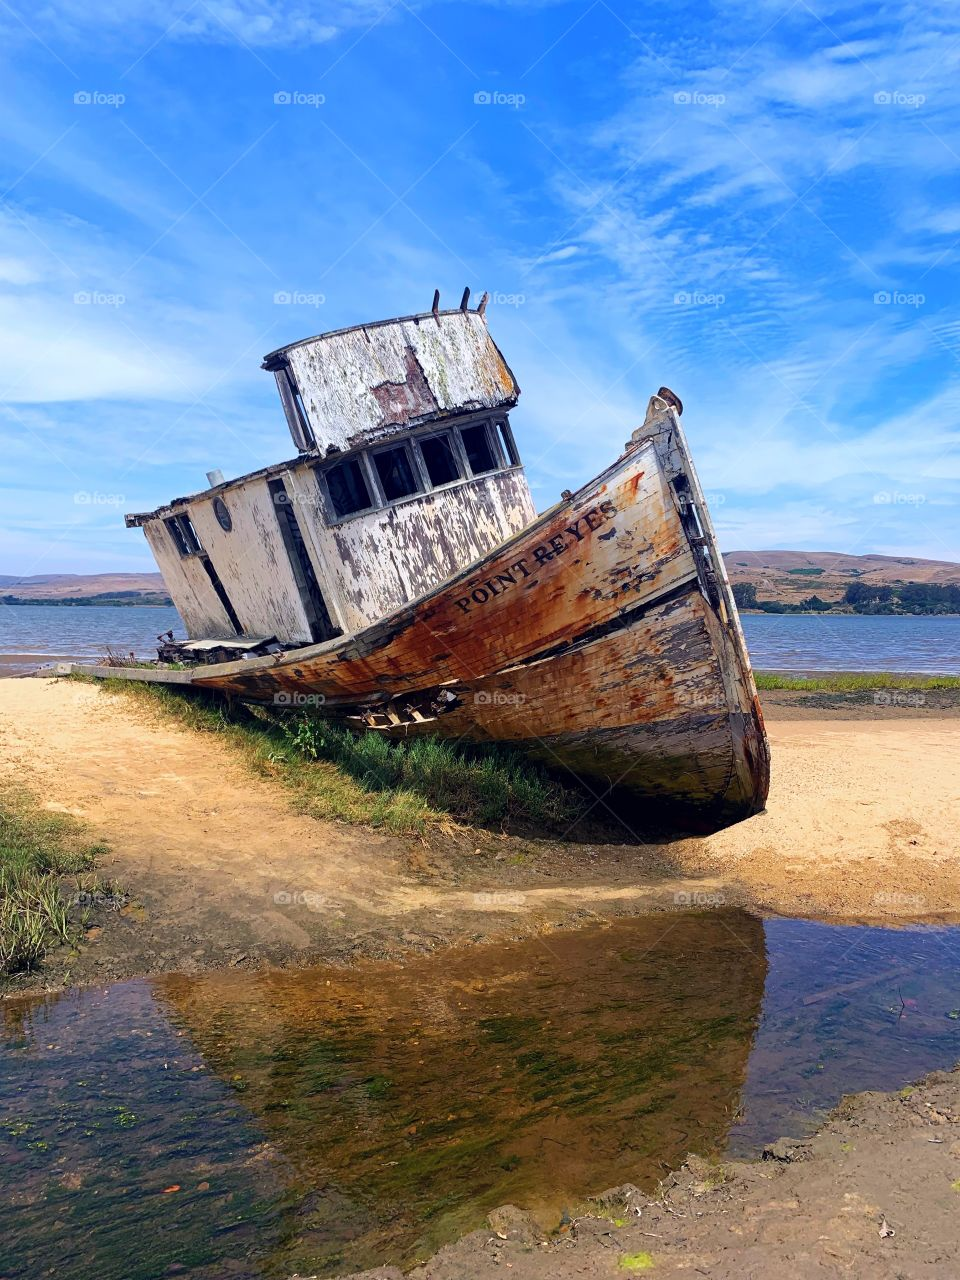 Point Reyes Shipwreck in Inverness, California